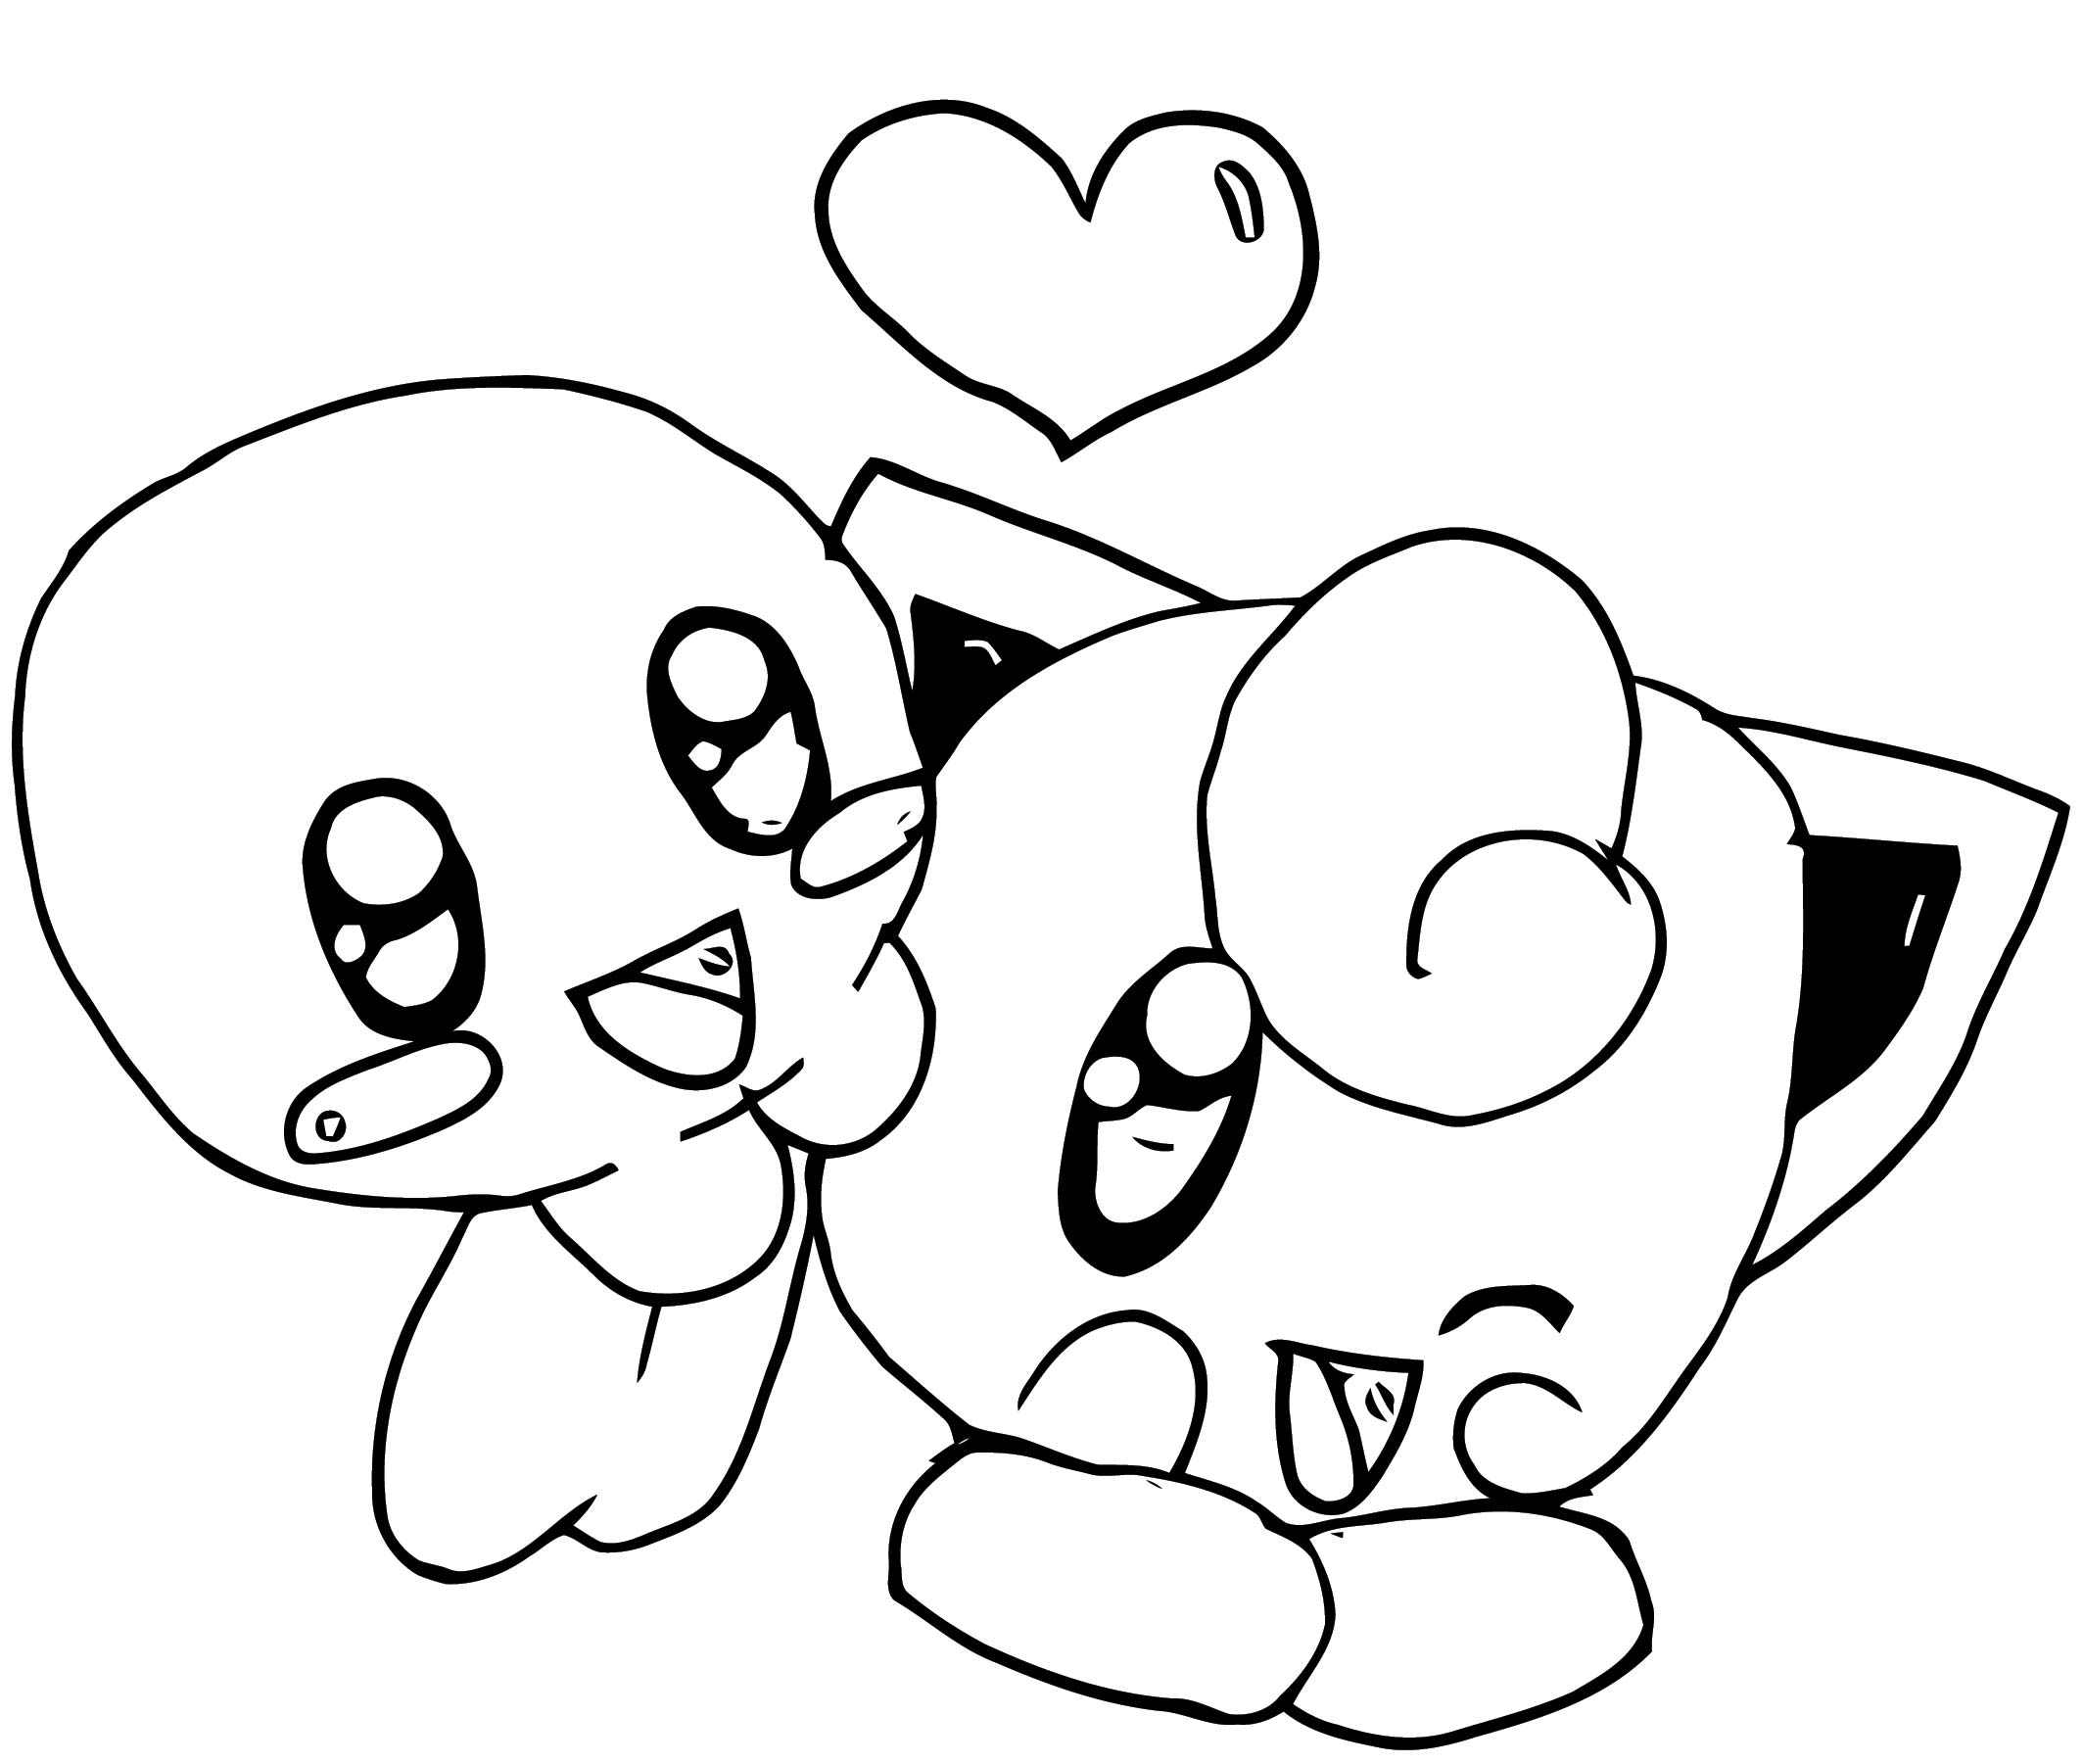 Kirby And Jigglypuff Coloring Page Www Tollebild Com